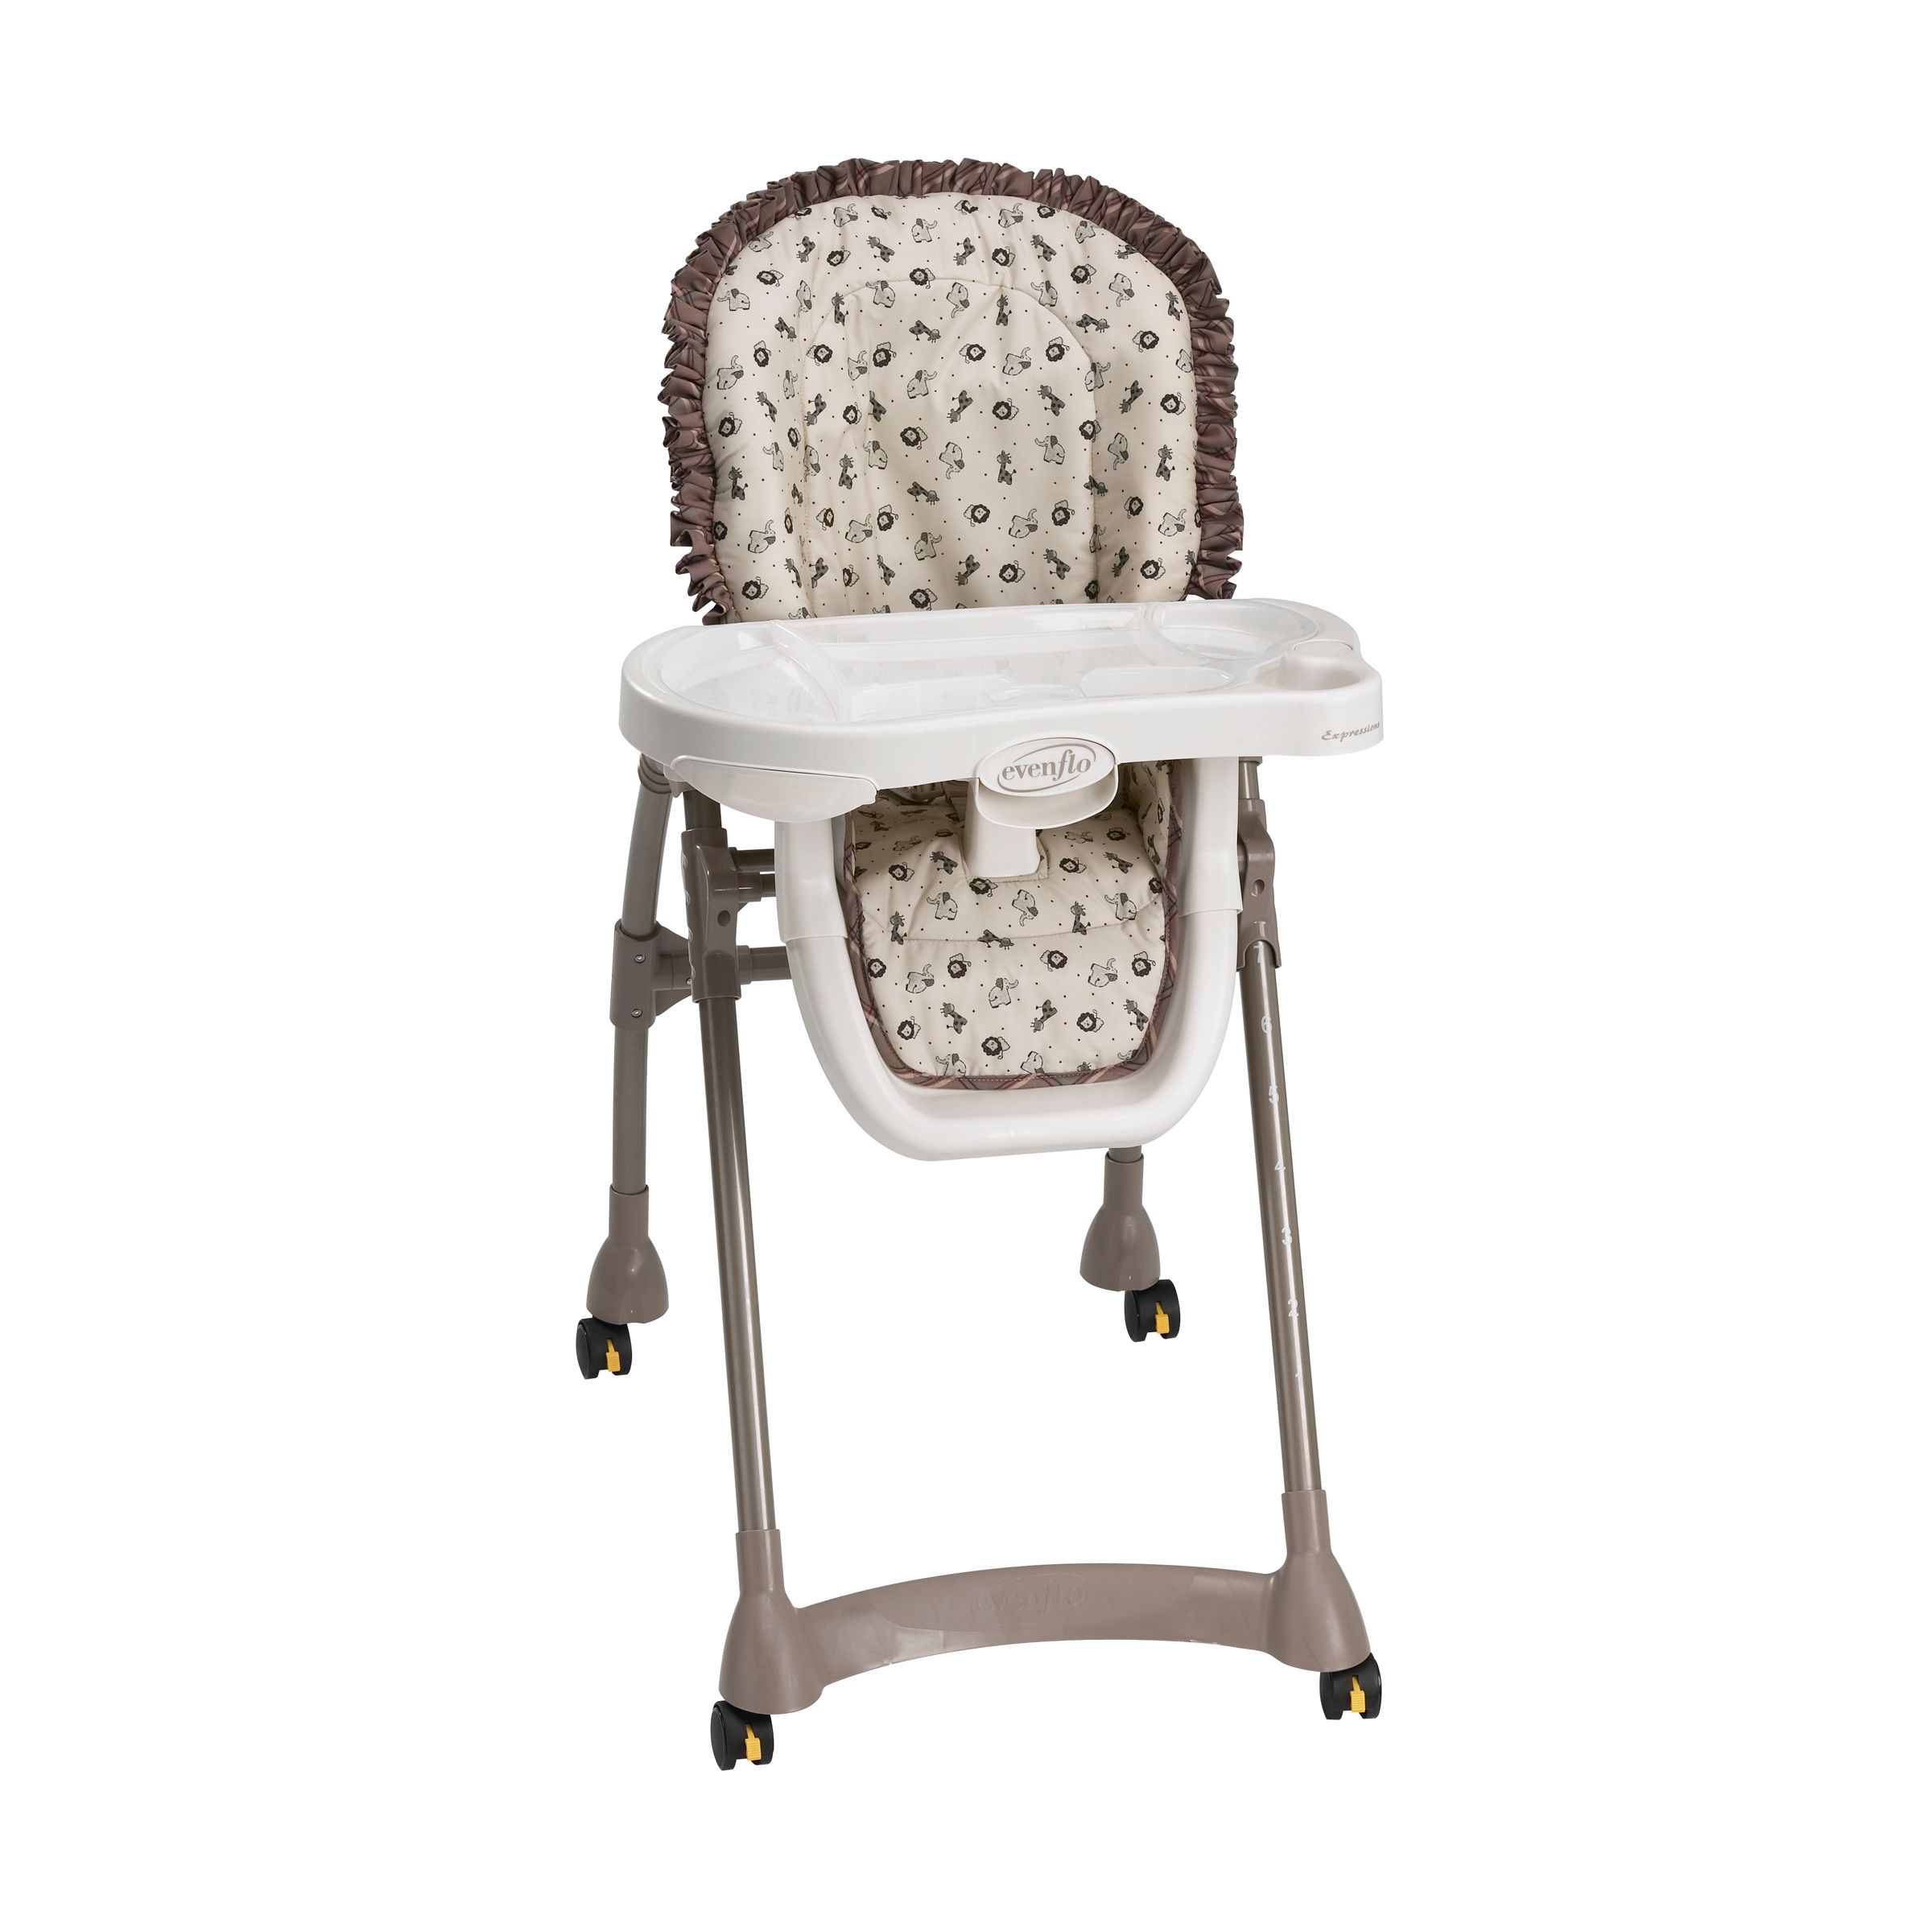 Cheap Baby High Chair Evenflo Expressions High Chair Safari Ii